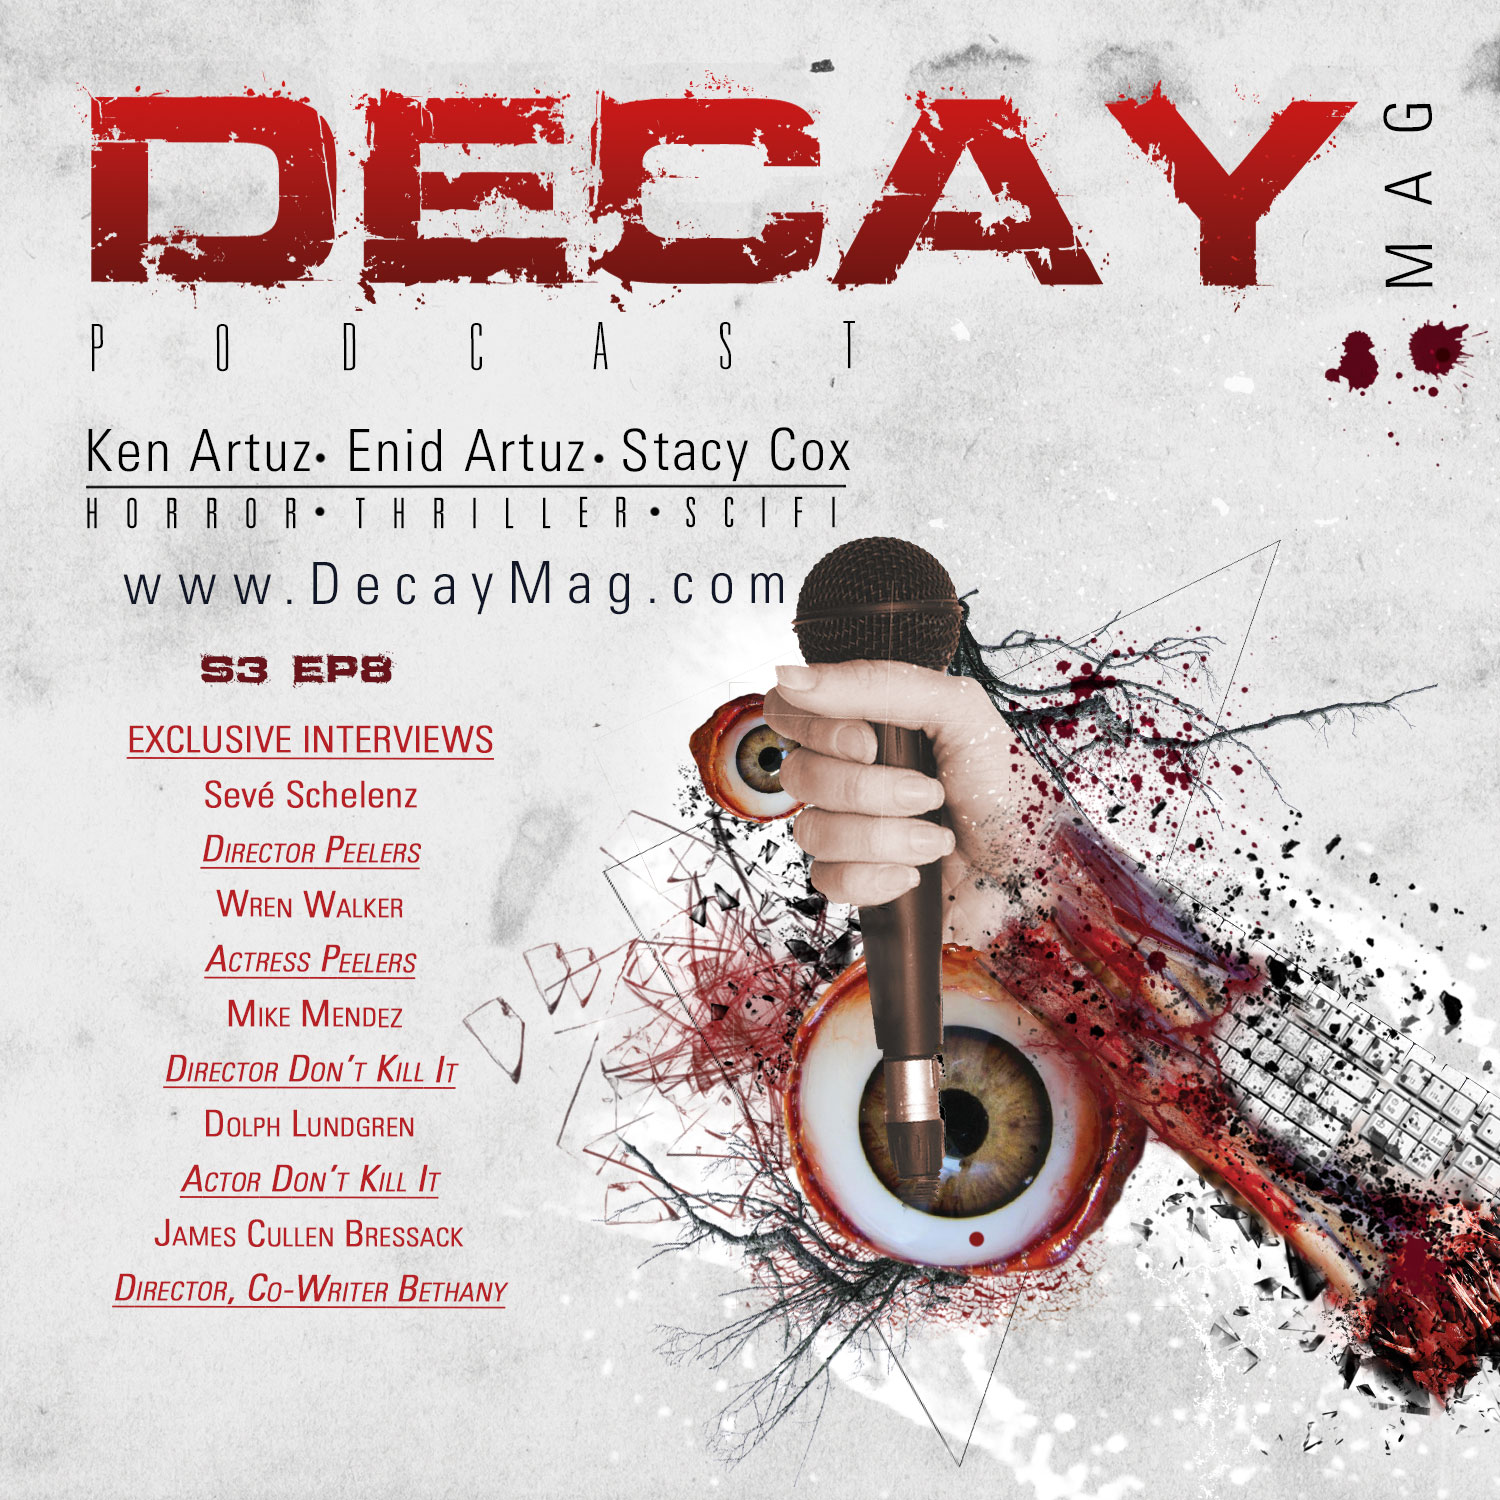 DecayMag Horror News Podcast S3 EP 8: Exclusive Interviews: Sevé Schelenz, Wren Walker, Mike Mendez, Dolph Lundgren, James Cullen Bressack